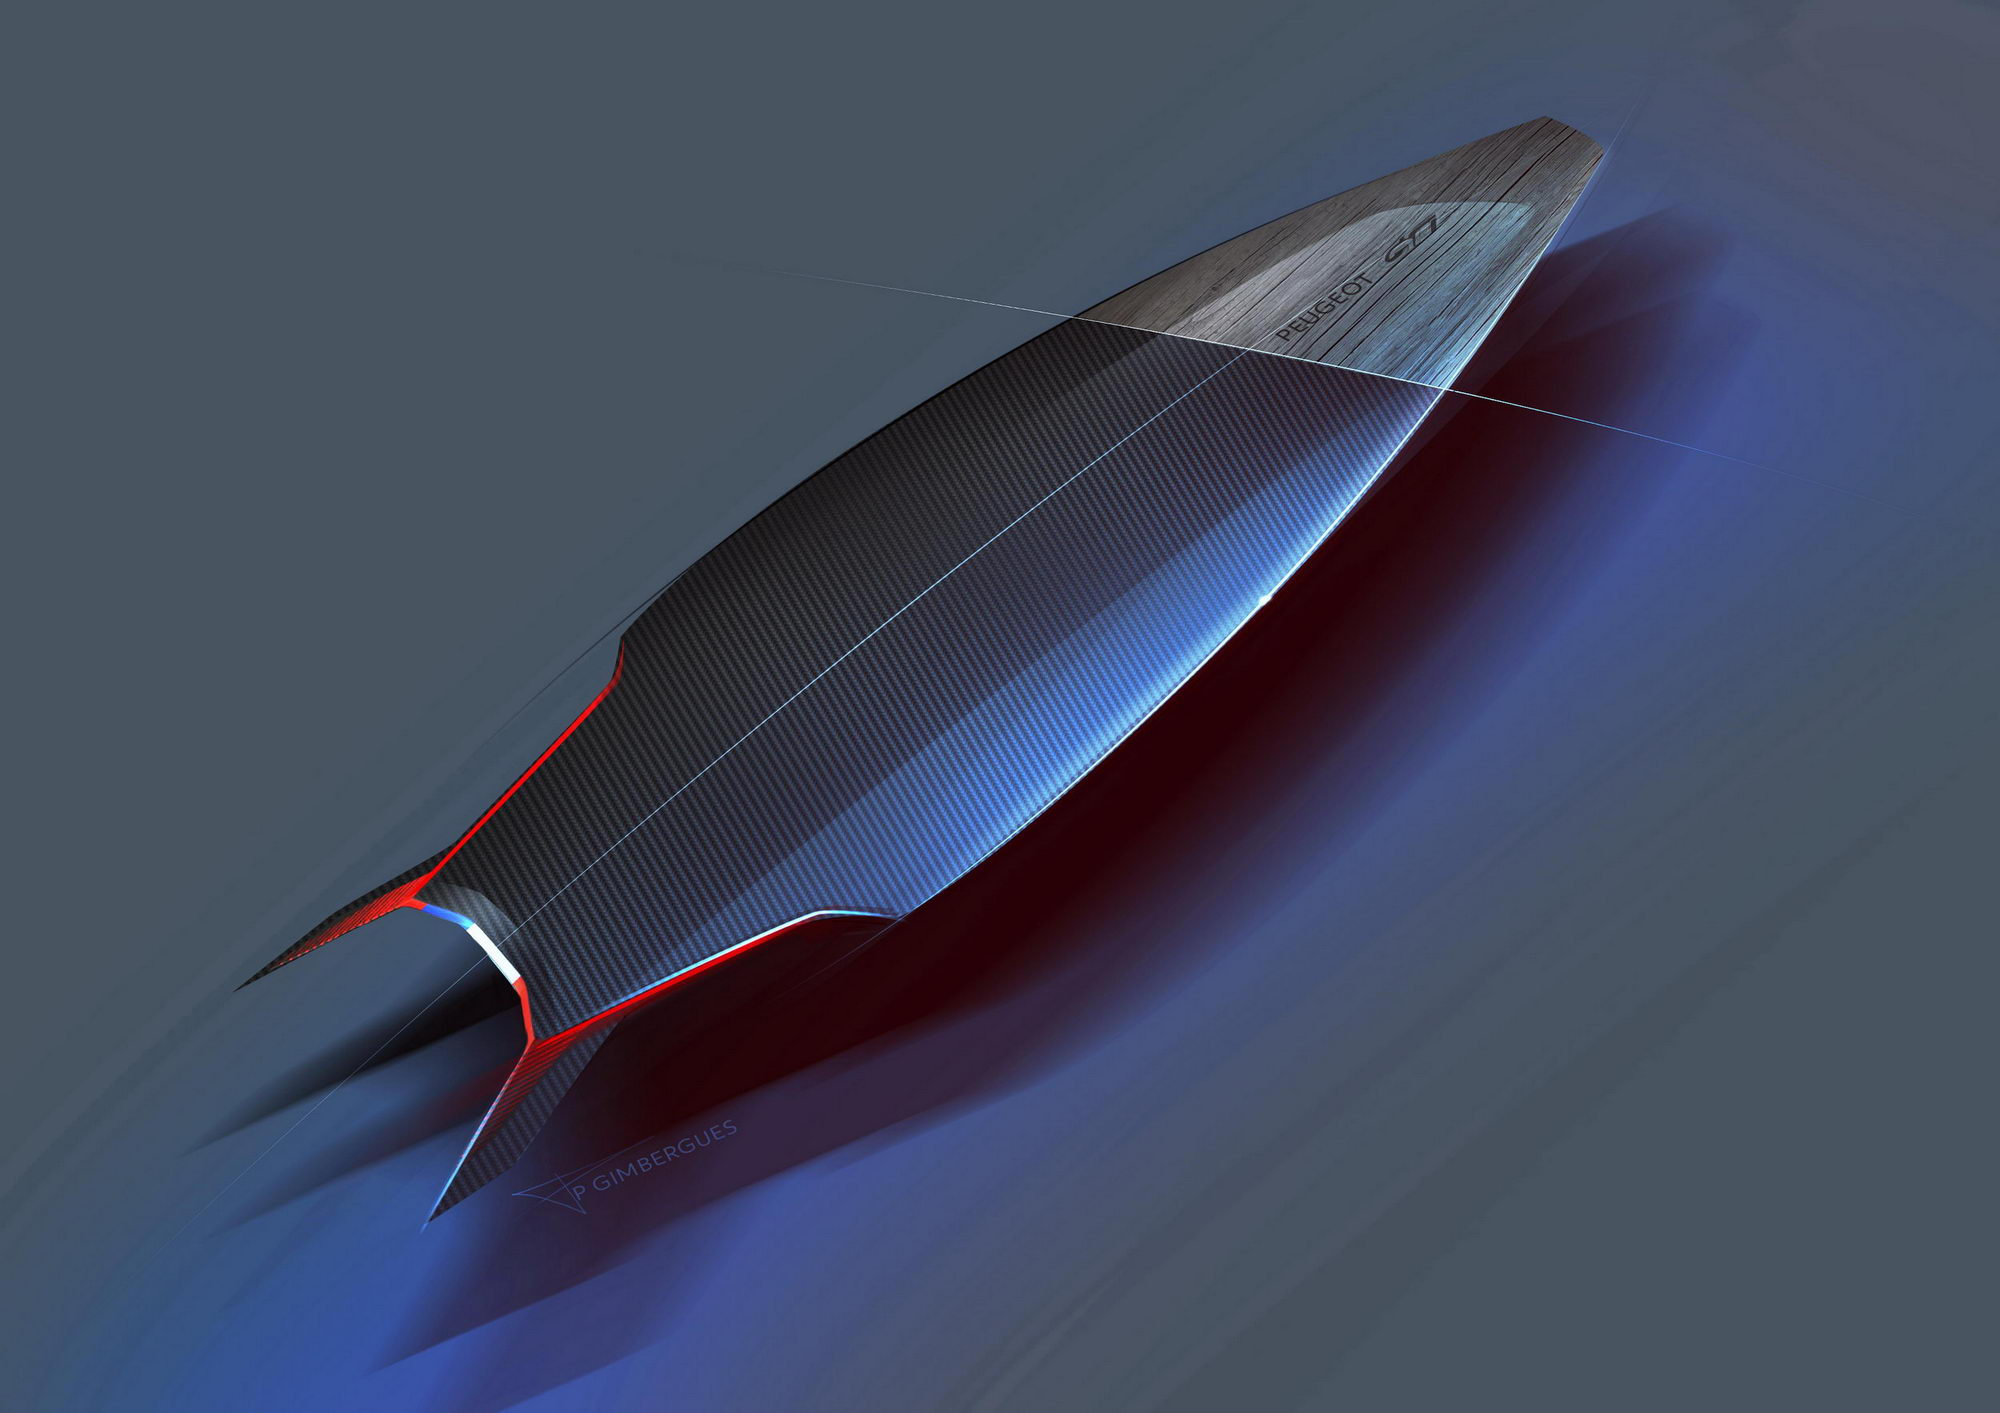 Transport - Sketches - Peugeot GTI Surfboard Concept